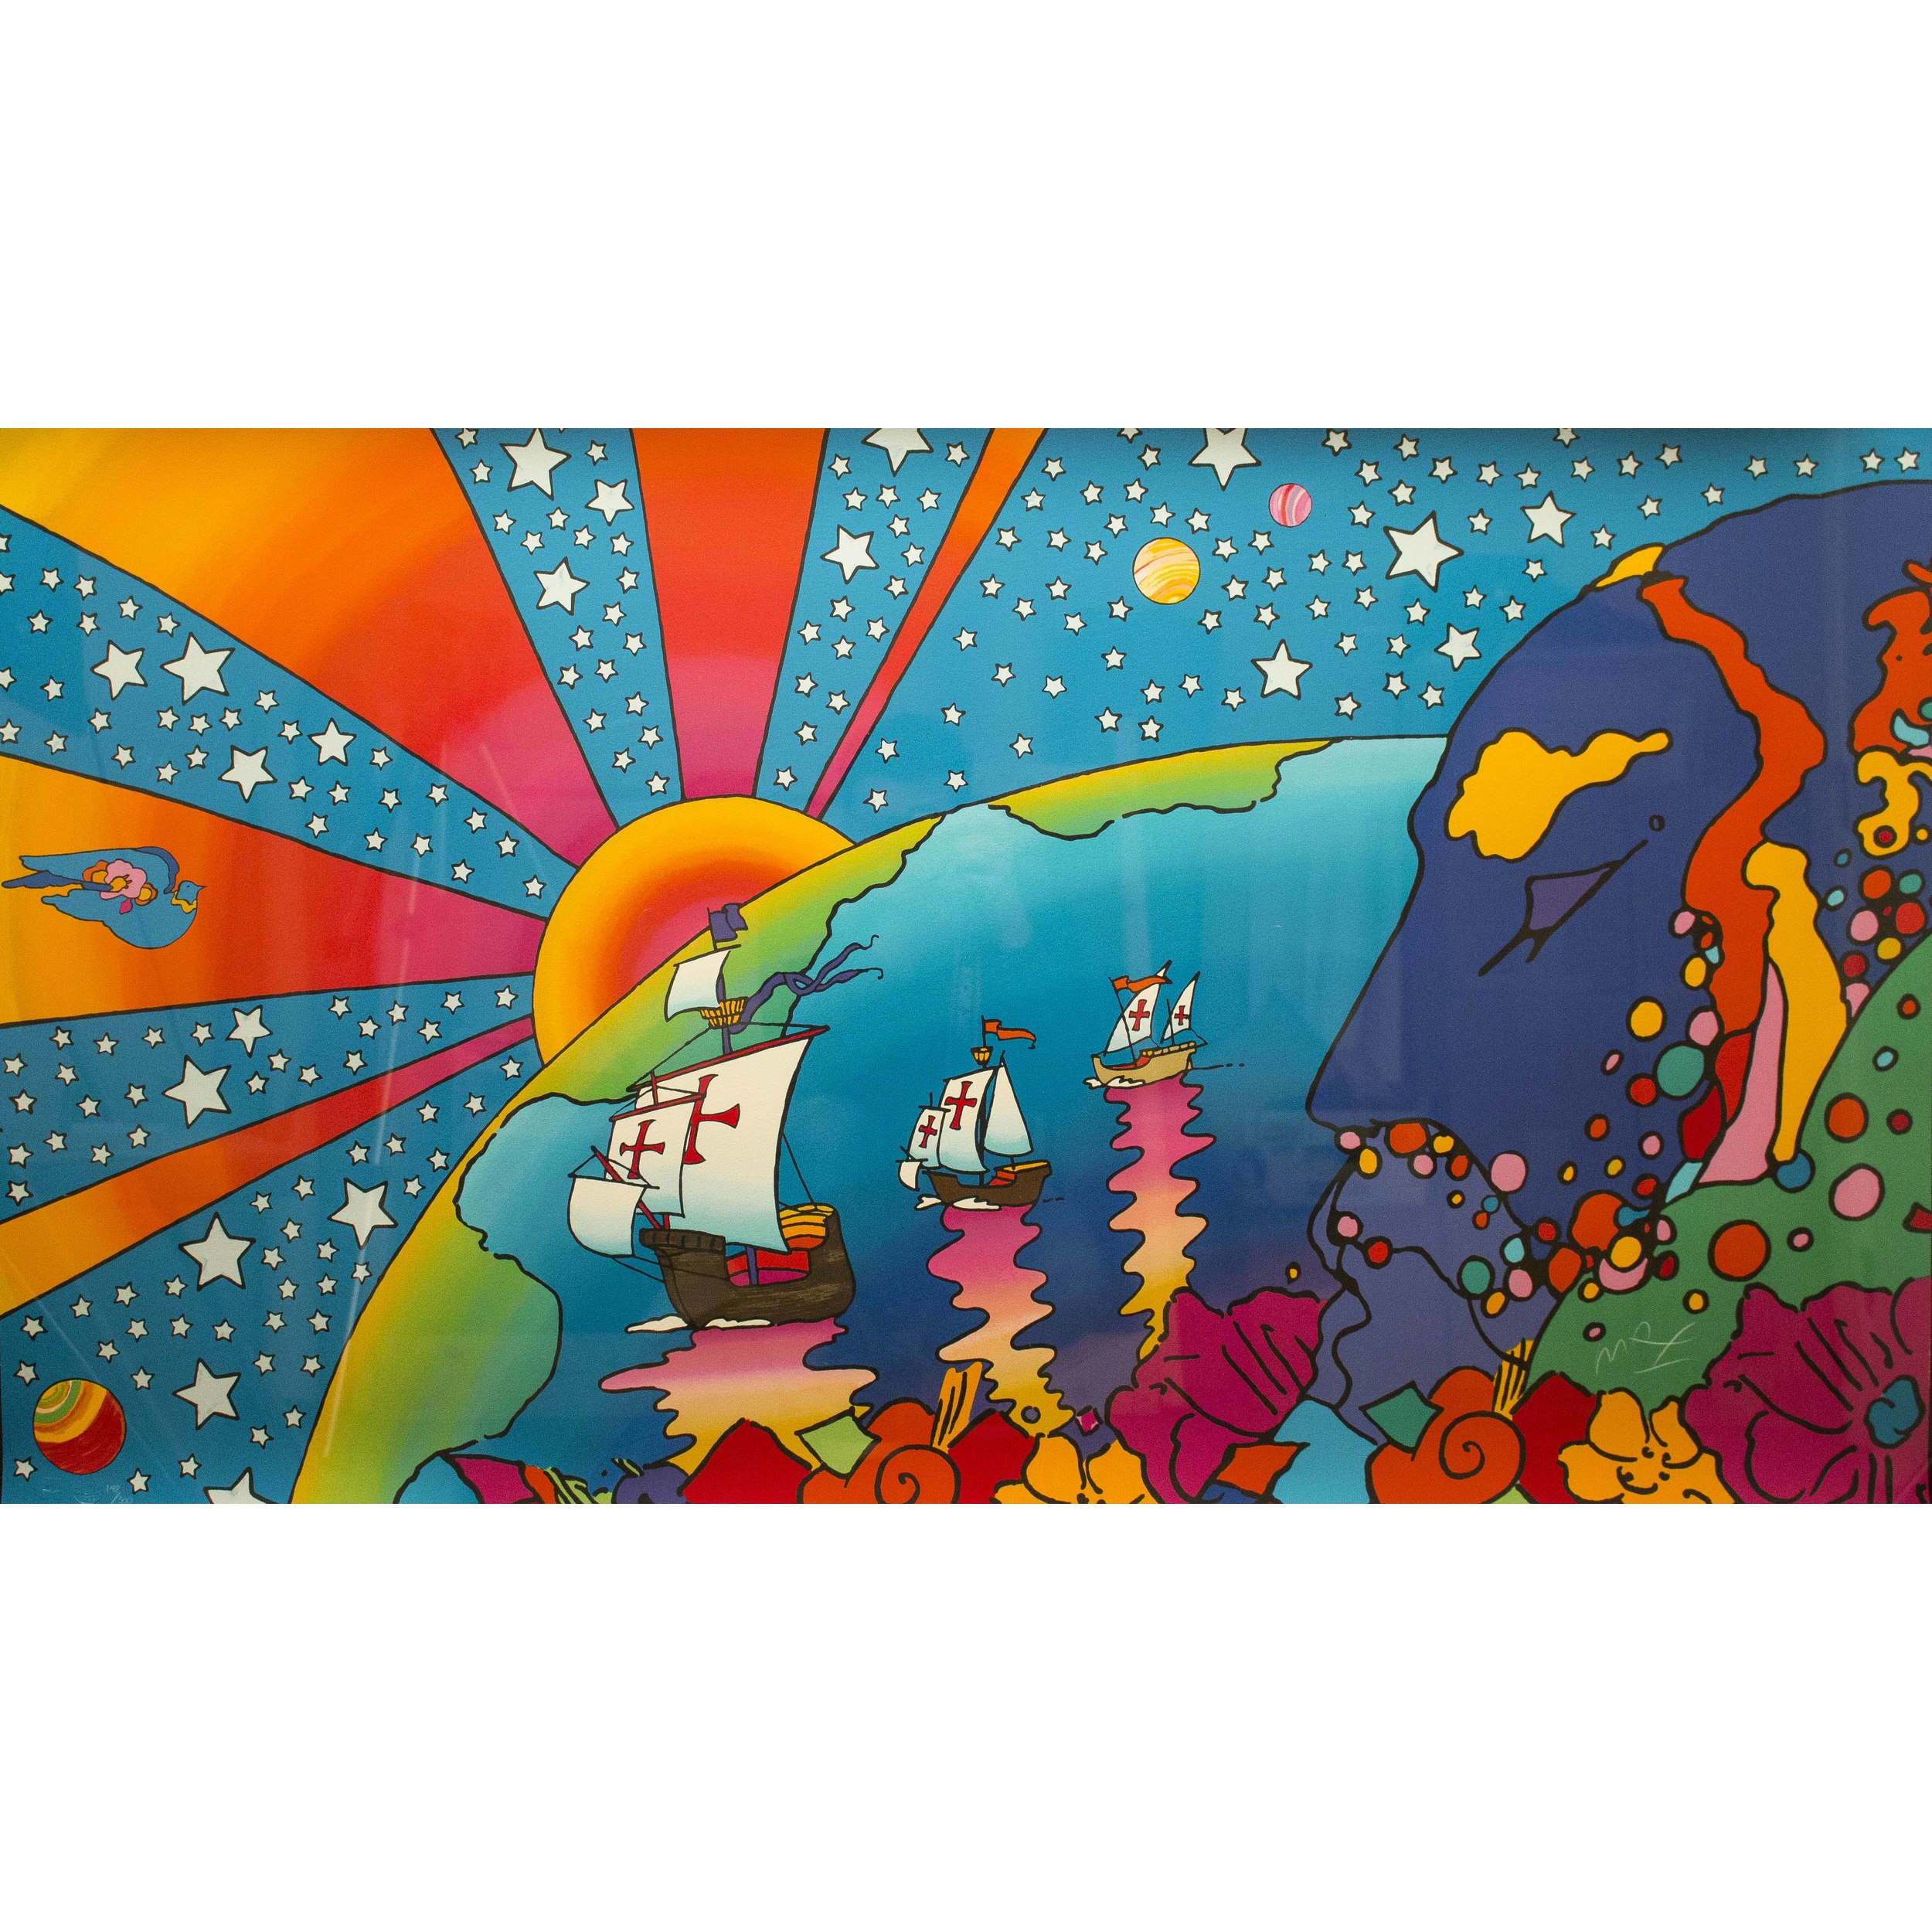 Peter Max Serigraph Quot Discovery 1492 1992 Quot Witherell S